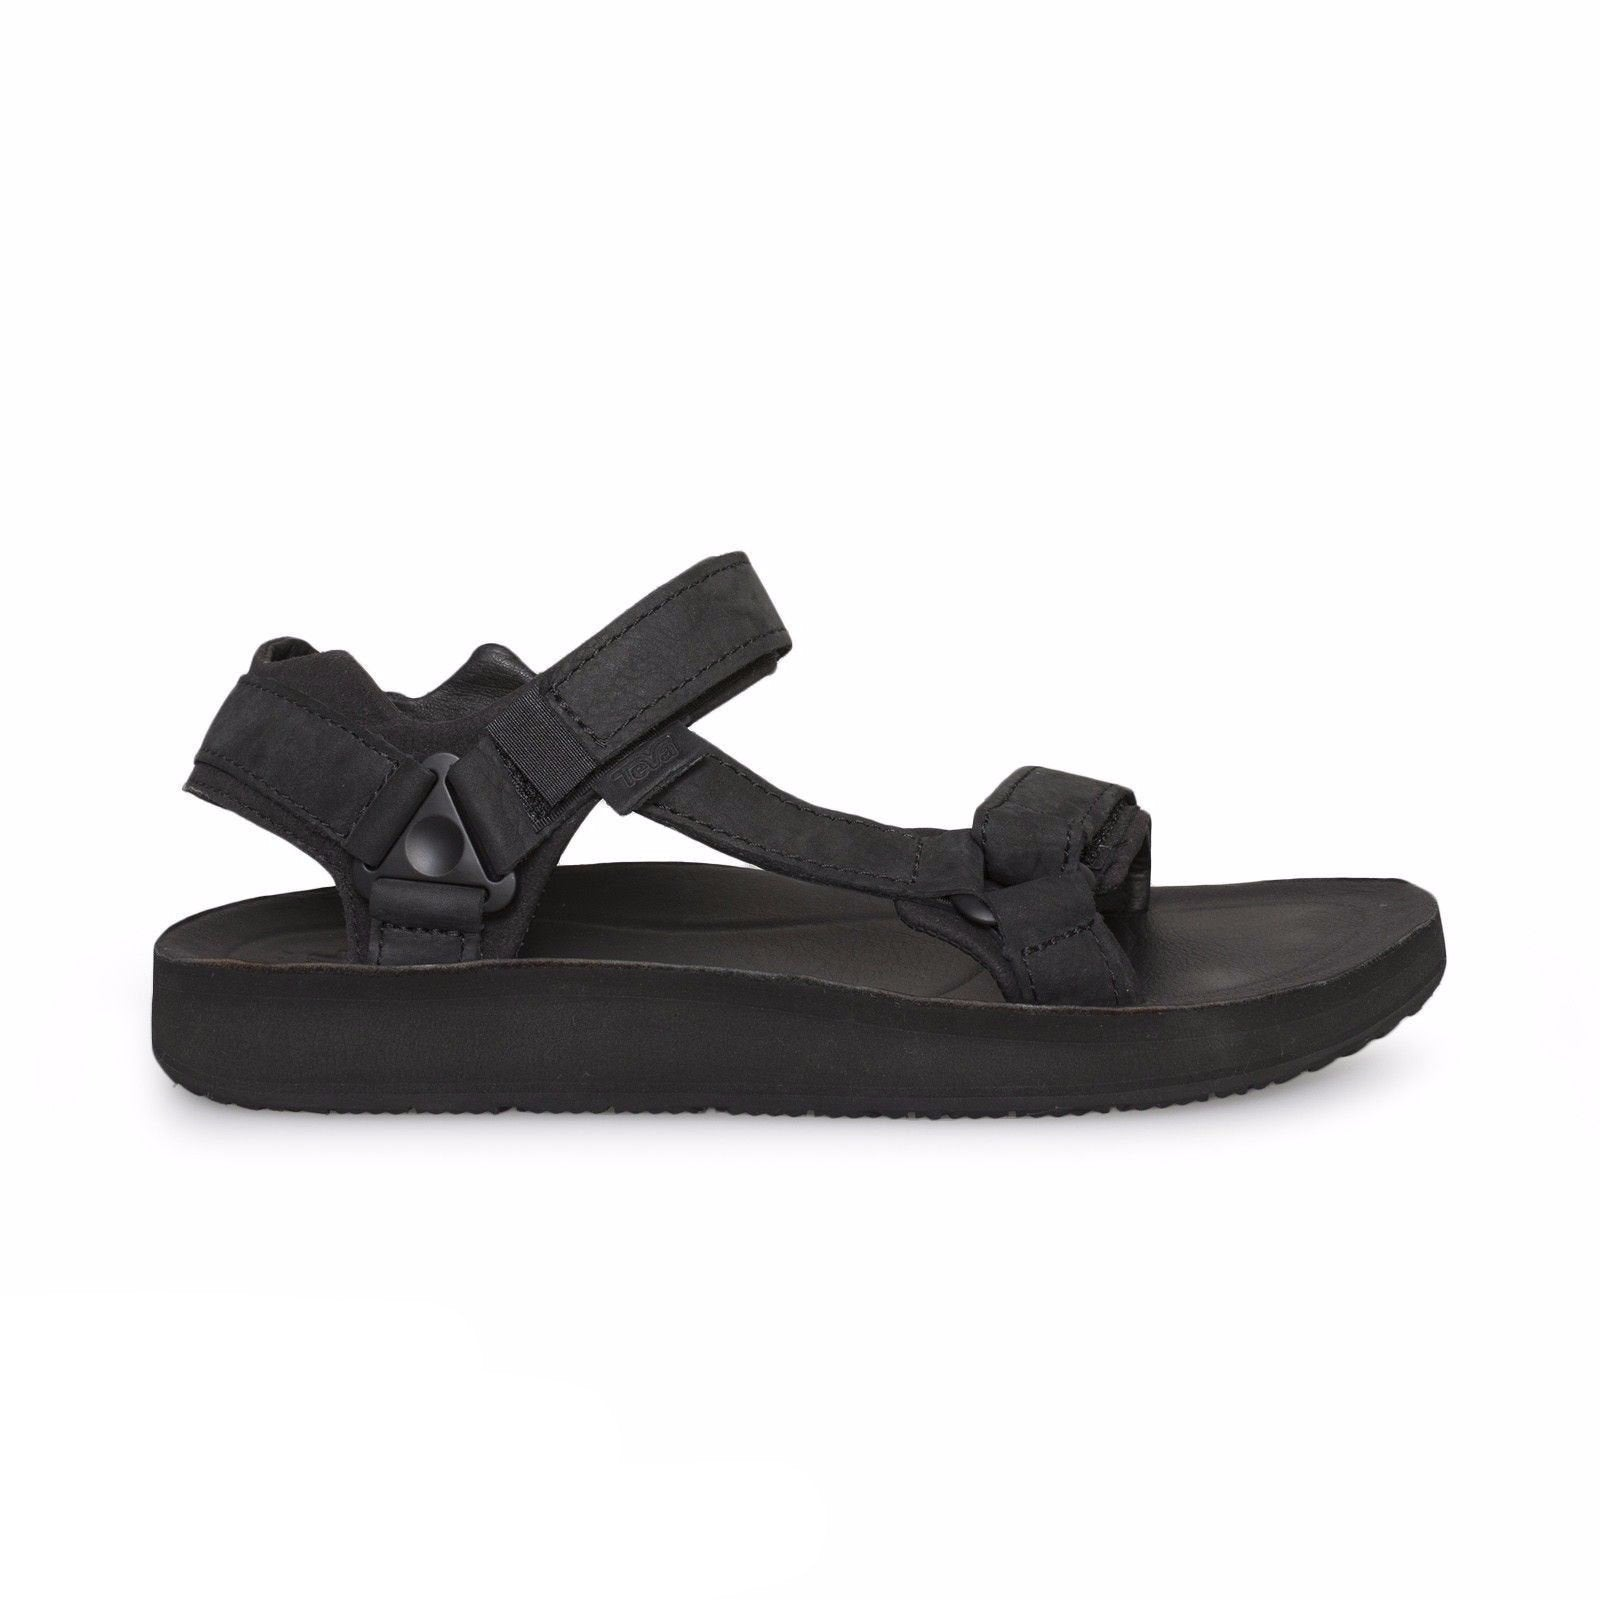 df58c630493ba0 Teva Original Universal Premier Leather Black Sandals - MyCozyBoots